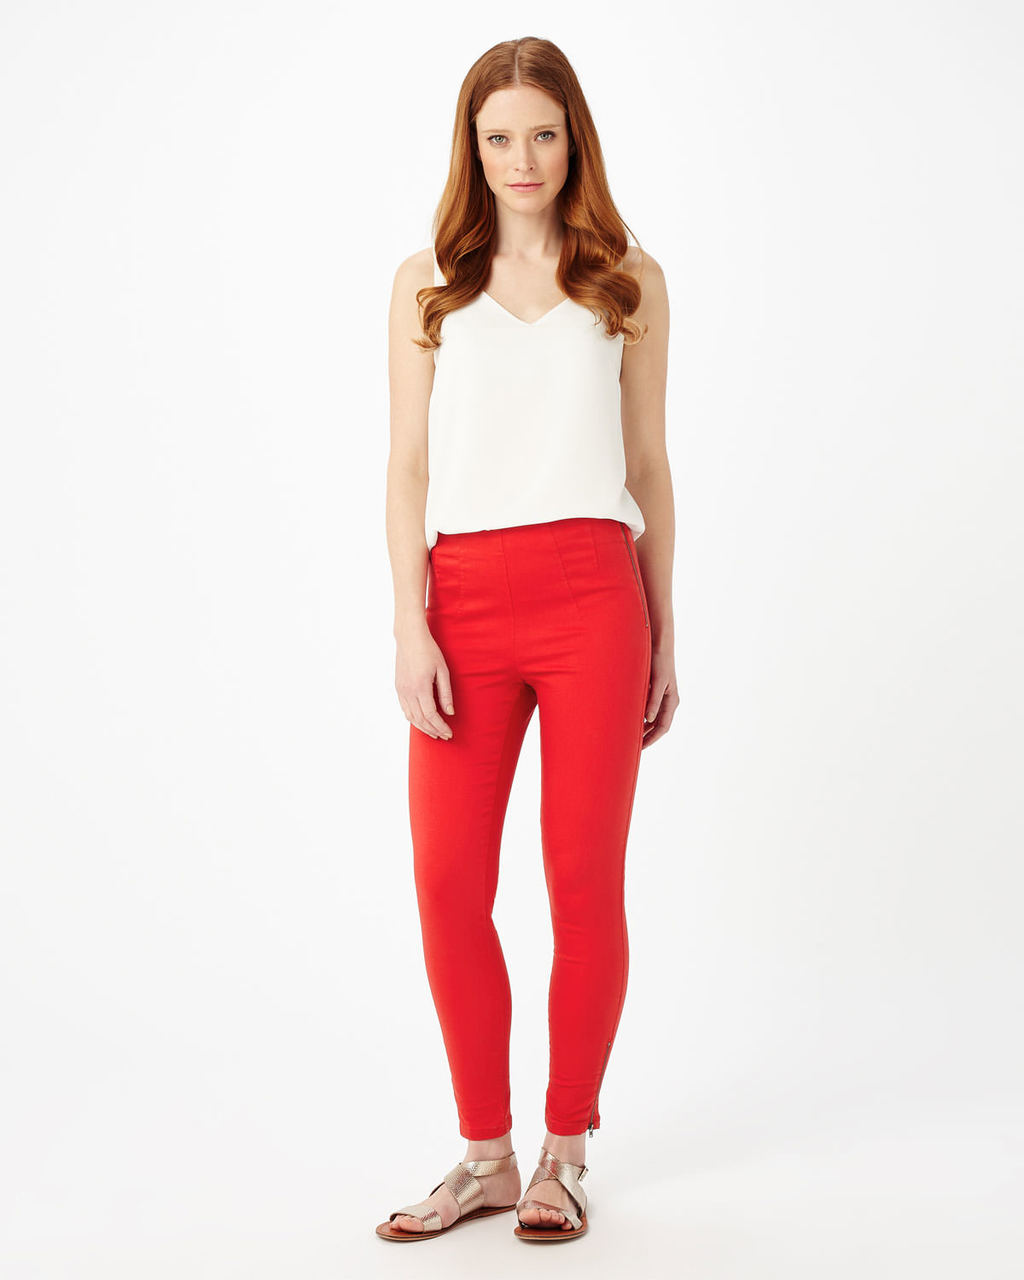 (W) Amina Zip 7/8th Jegging - pattern: plain; style: leggings; waist: high rise; hip detail: draws attention to hips; predominant colour: true red; length: ankle length; fibres: cotton - stretch; fit: skinny/tight leg; pattern type: fabric; texture group: other - light to midweight; occasions: creative work; pattern size: standard (bottom); season: s/s 2016; wardrobe: highlight